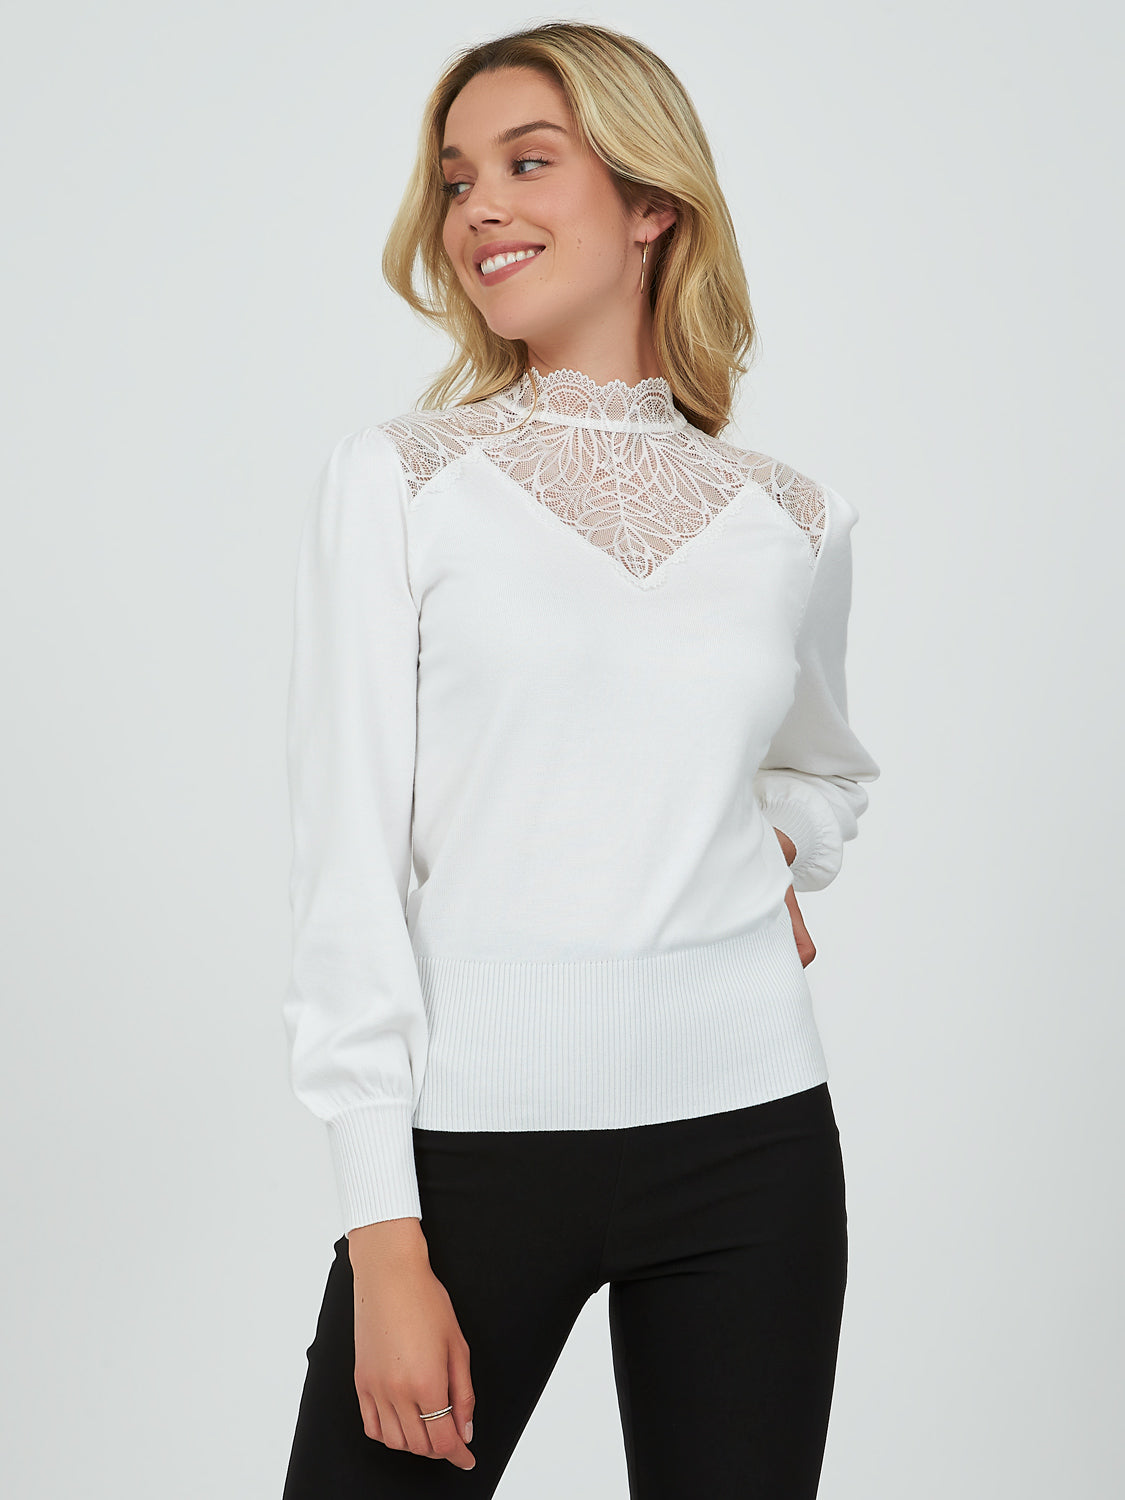 Ruffles & Lace Mock Neck Sweater Knit Top